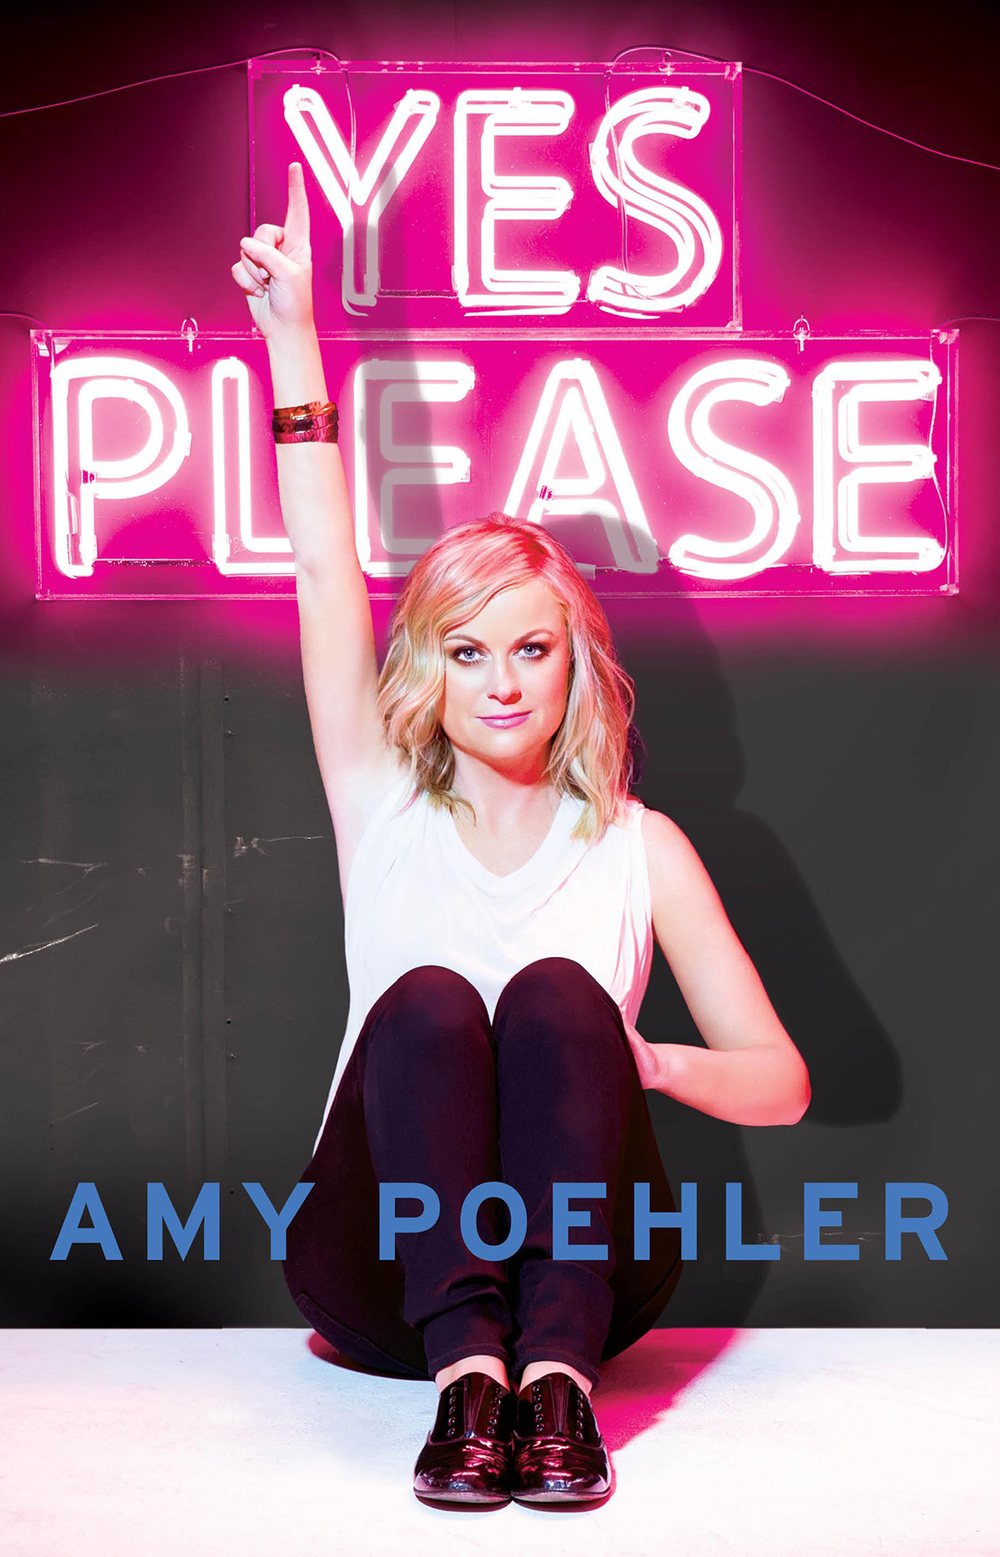 amy-poehler-yes-please-book-cover.jpg